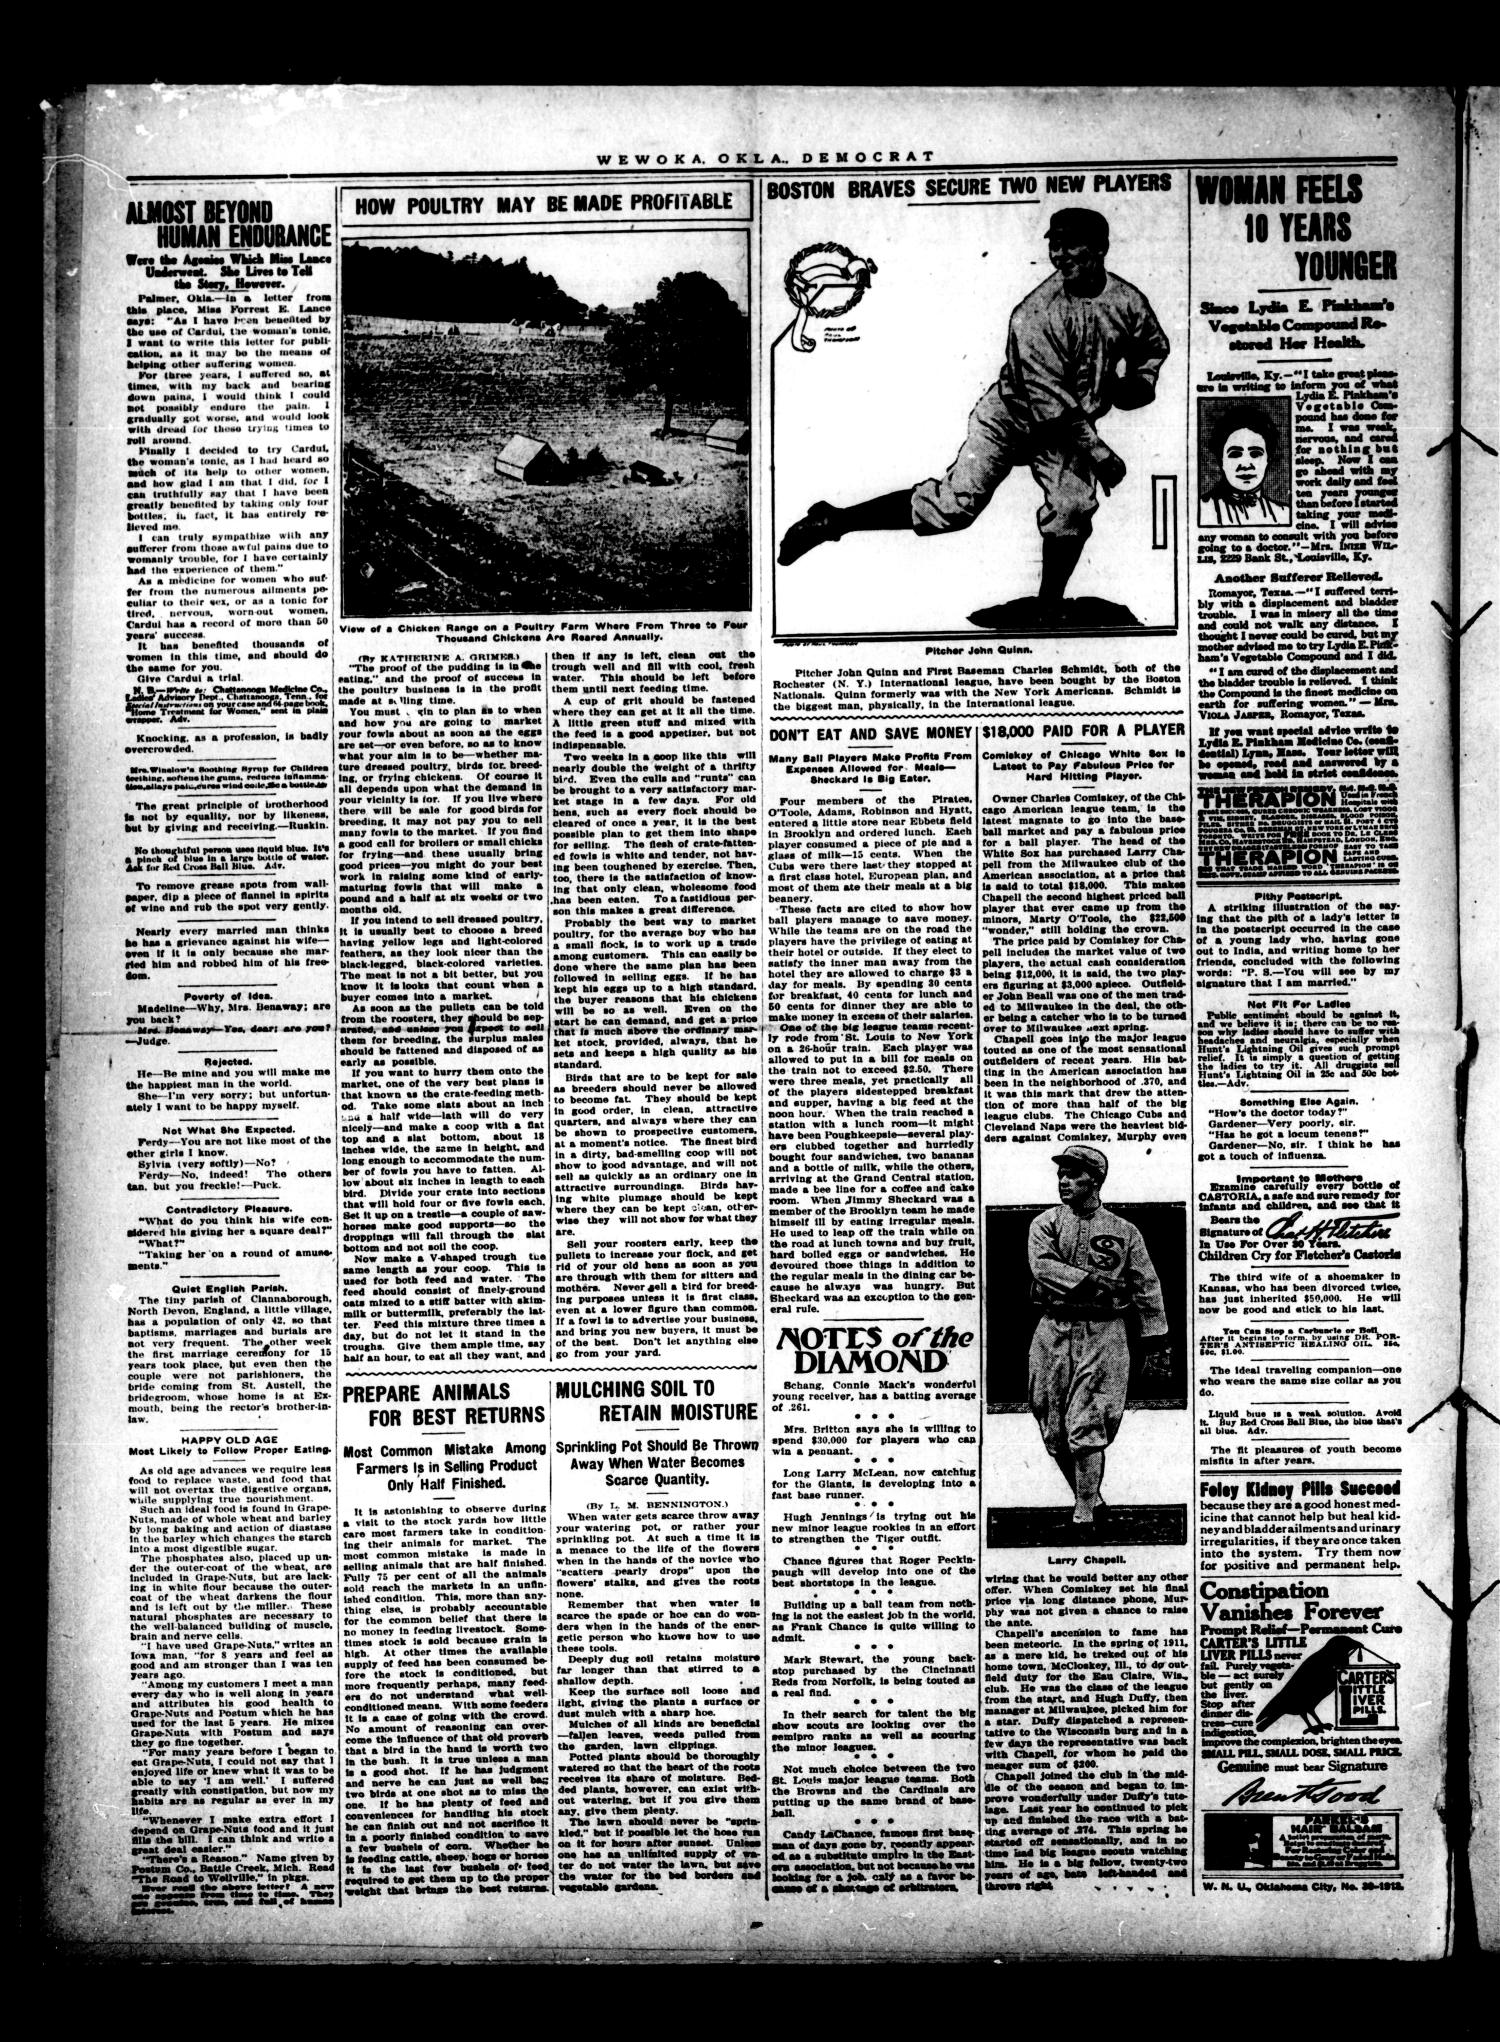 Wewoka Democrat (Wewoka, Okla.), Vol. 6, No. 50, Ed. 1 Thursday, September 25, 1913                                                                                                      [Sequence #]: 2 of 8